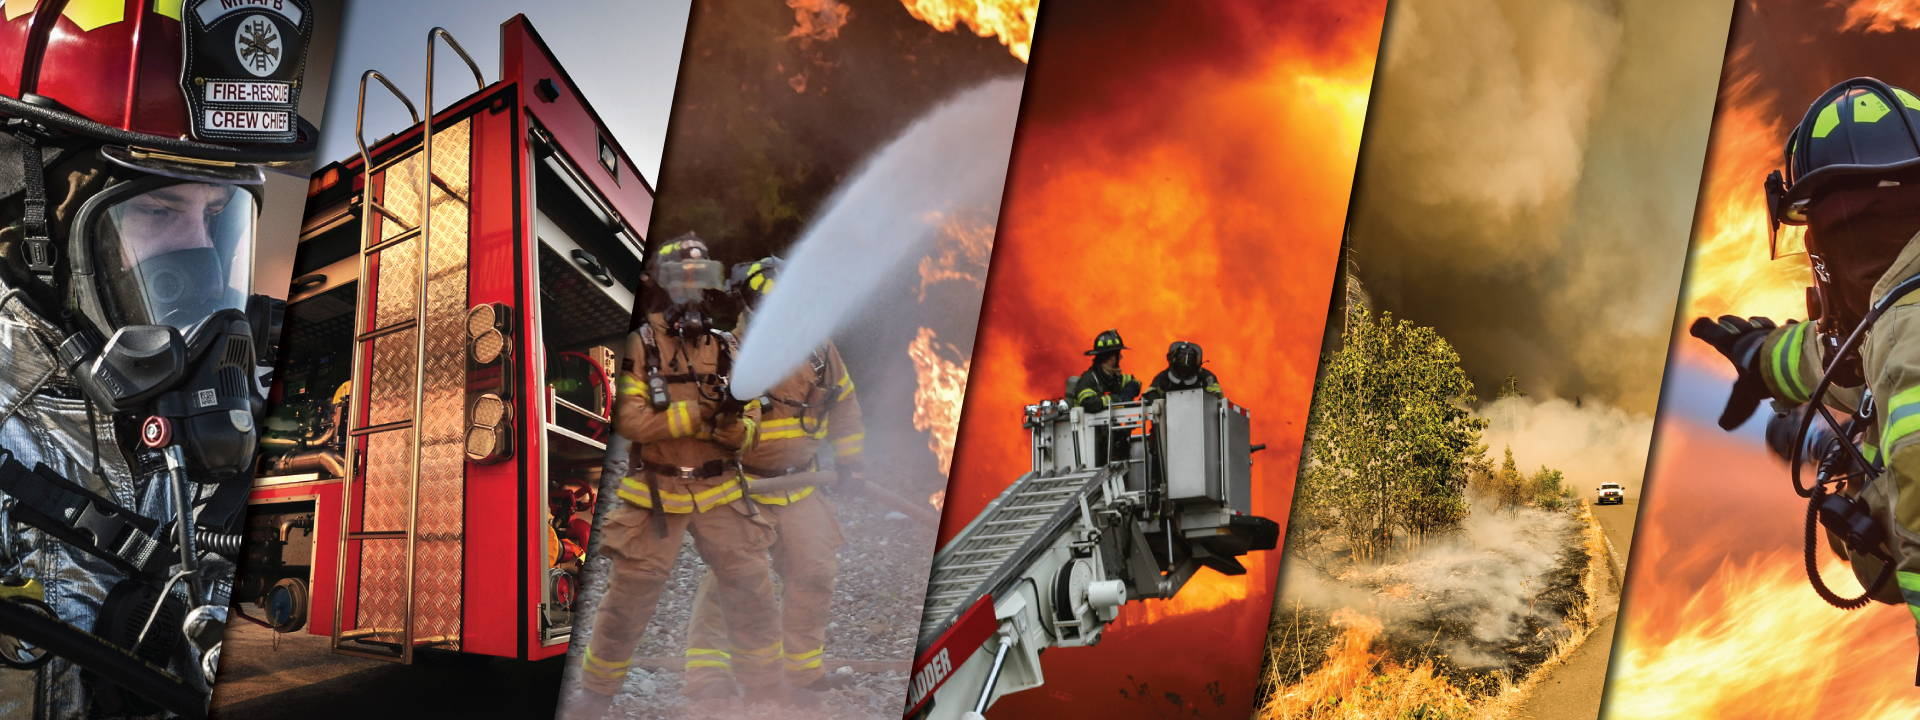 Rugged Radios Fire Safety Products